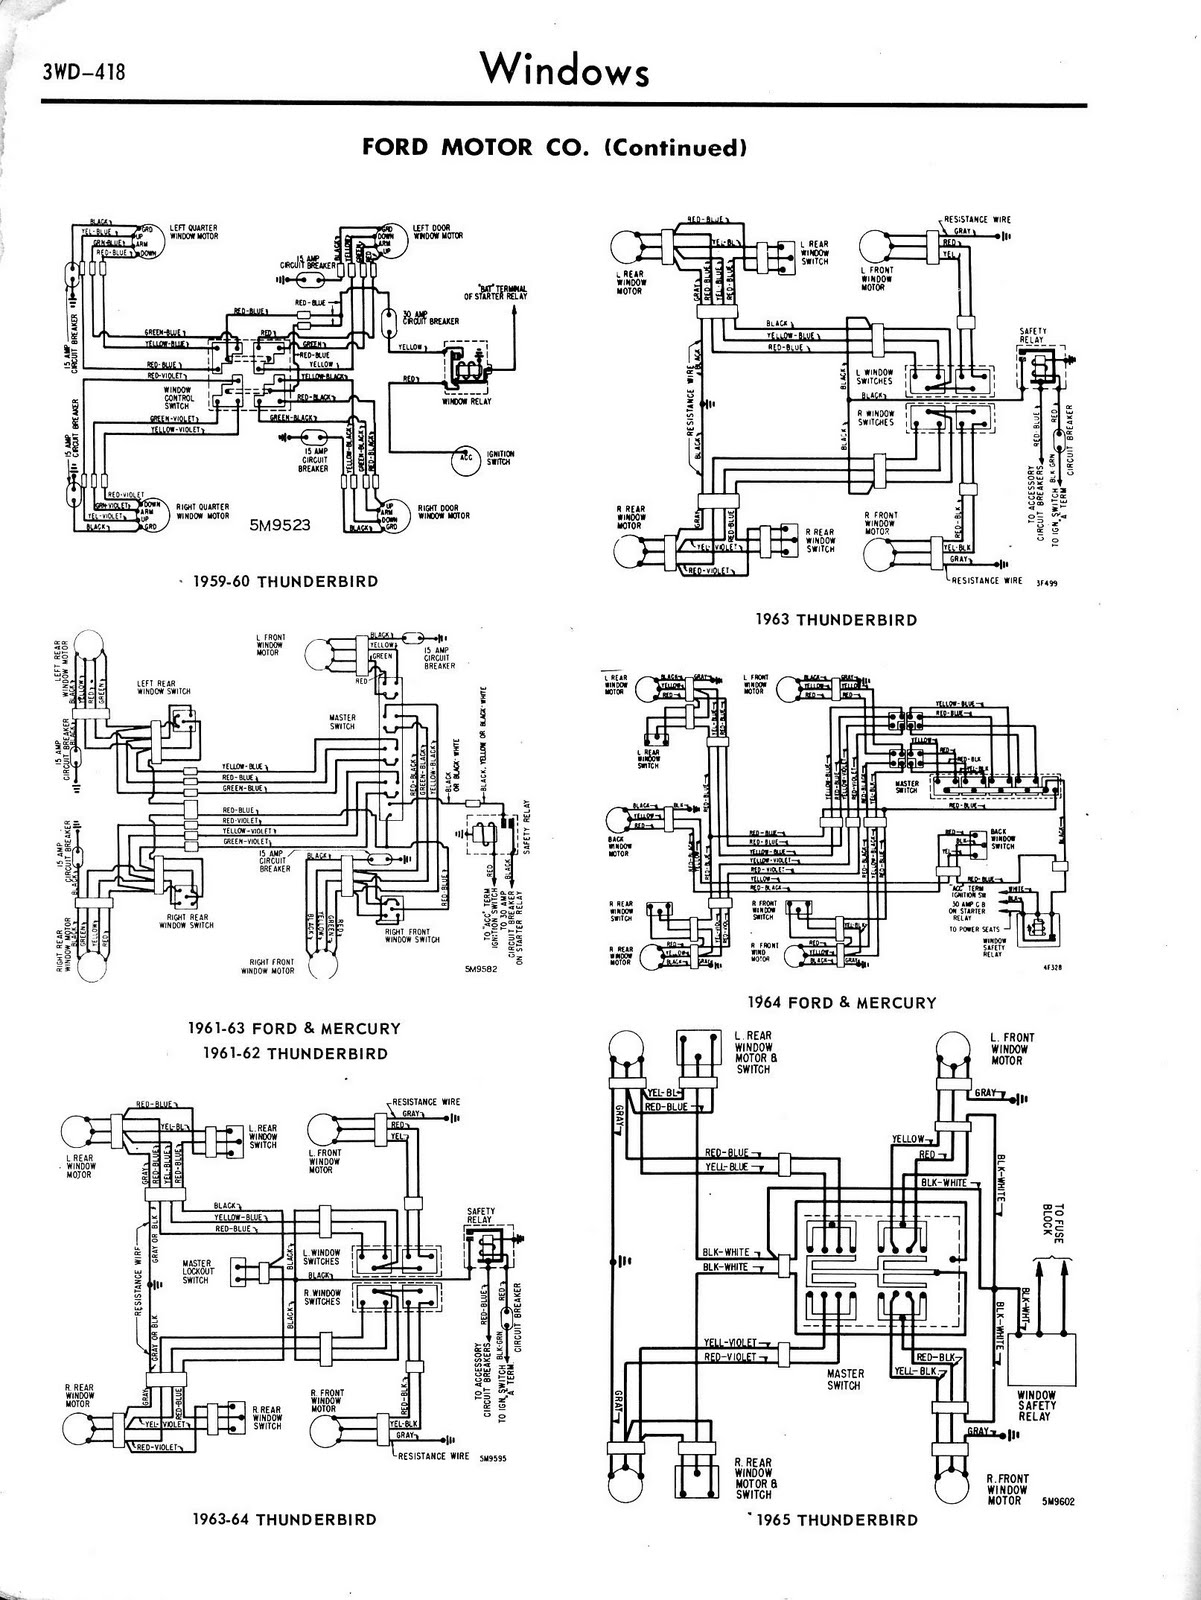 1961 390 cadillac engine vacuum hose diagram. Black Bedroom Furniture Sets. Home Design Ideas